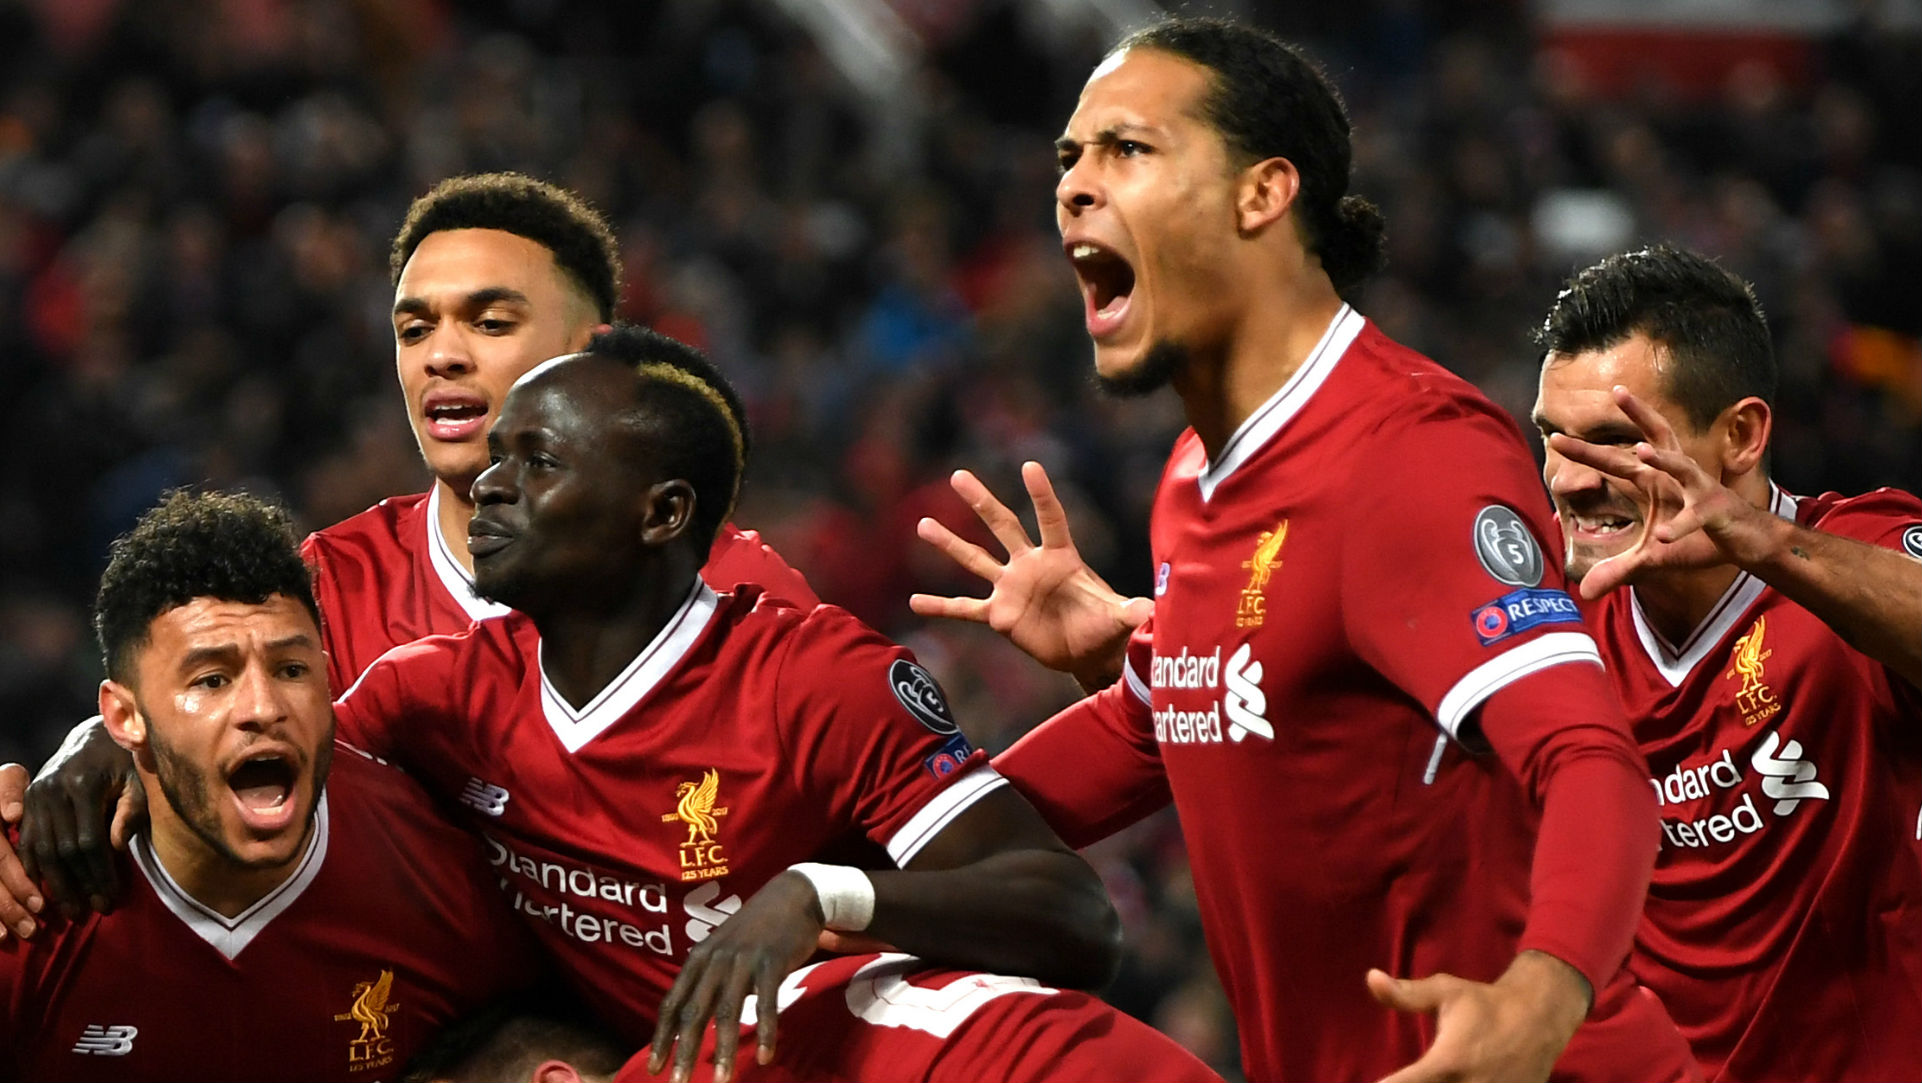 Liverpool can see off Man City and win the Champions League